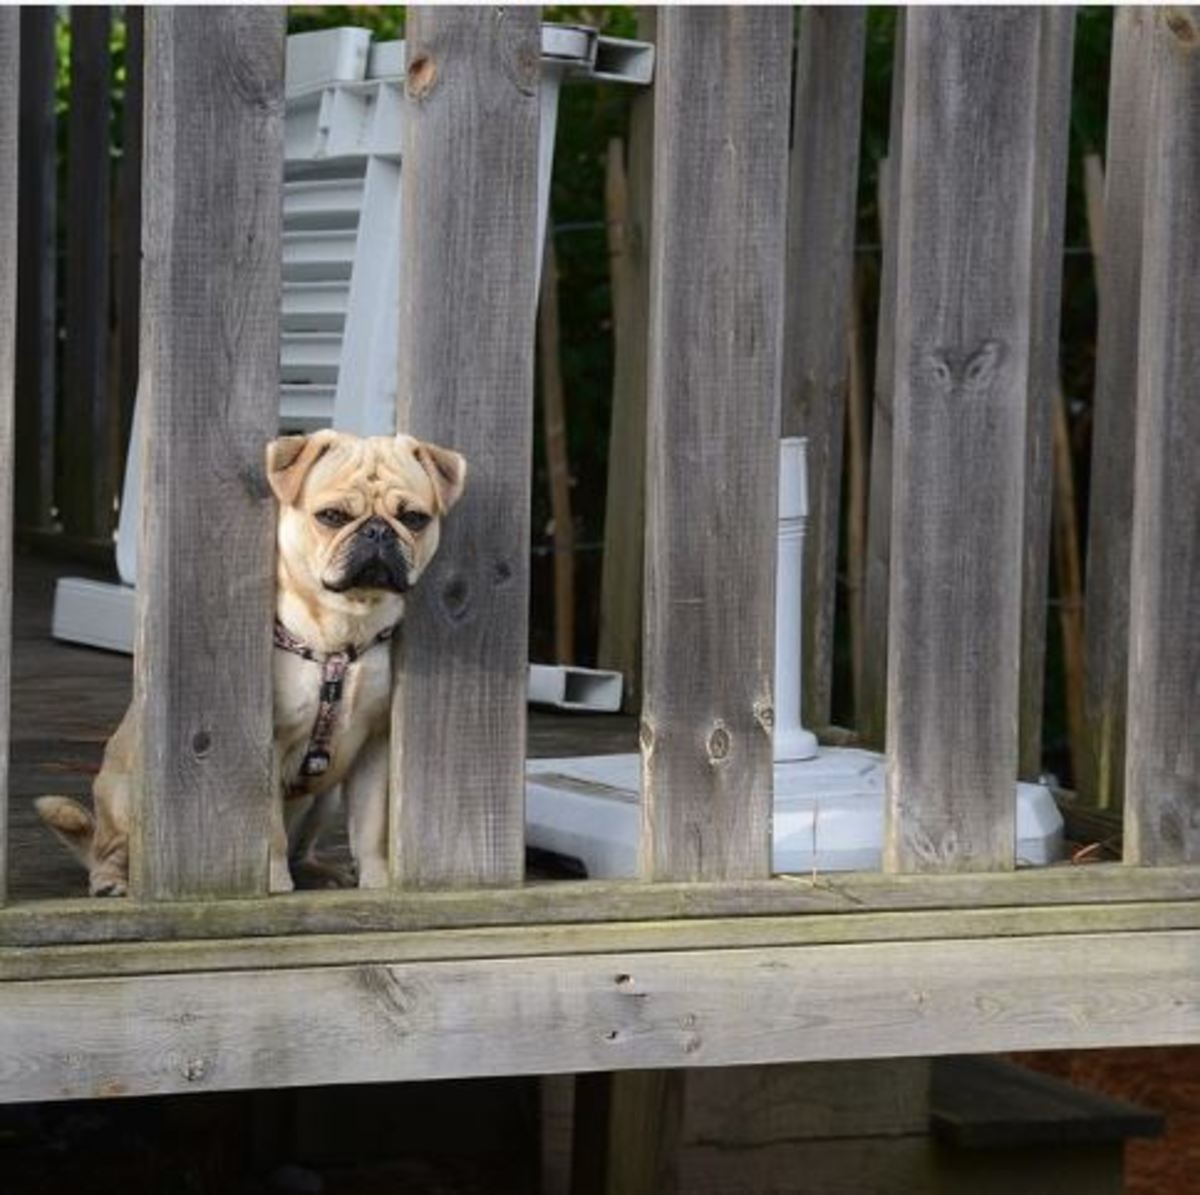 Is your dog a porch sitter?